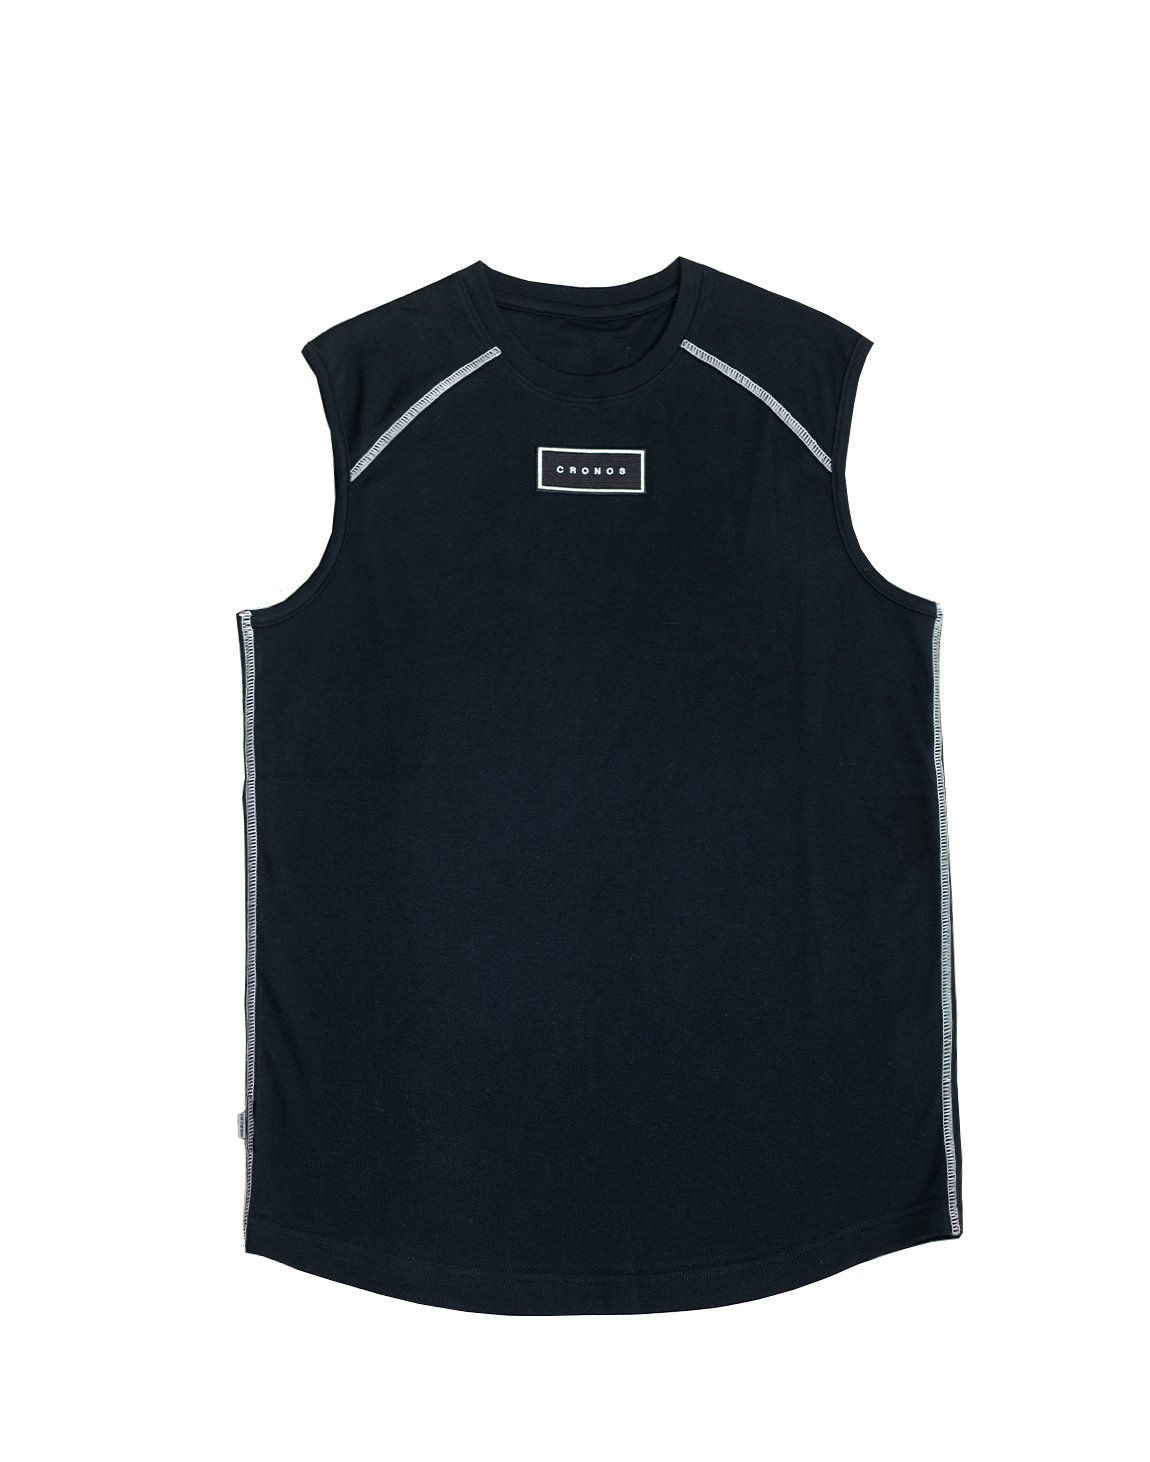 <img class='new_mark_img1' src='https://img.shop-pro.jp/img/new/icons55.gif' style='border:none;display:inline;margin:0px;padding:0px;width:auto;' />FRONT PATCH LOGO SLEEVELESS【BLACK】